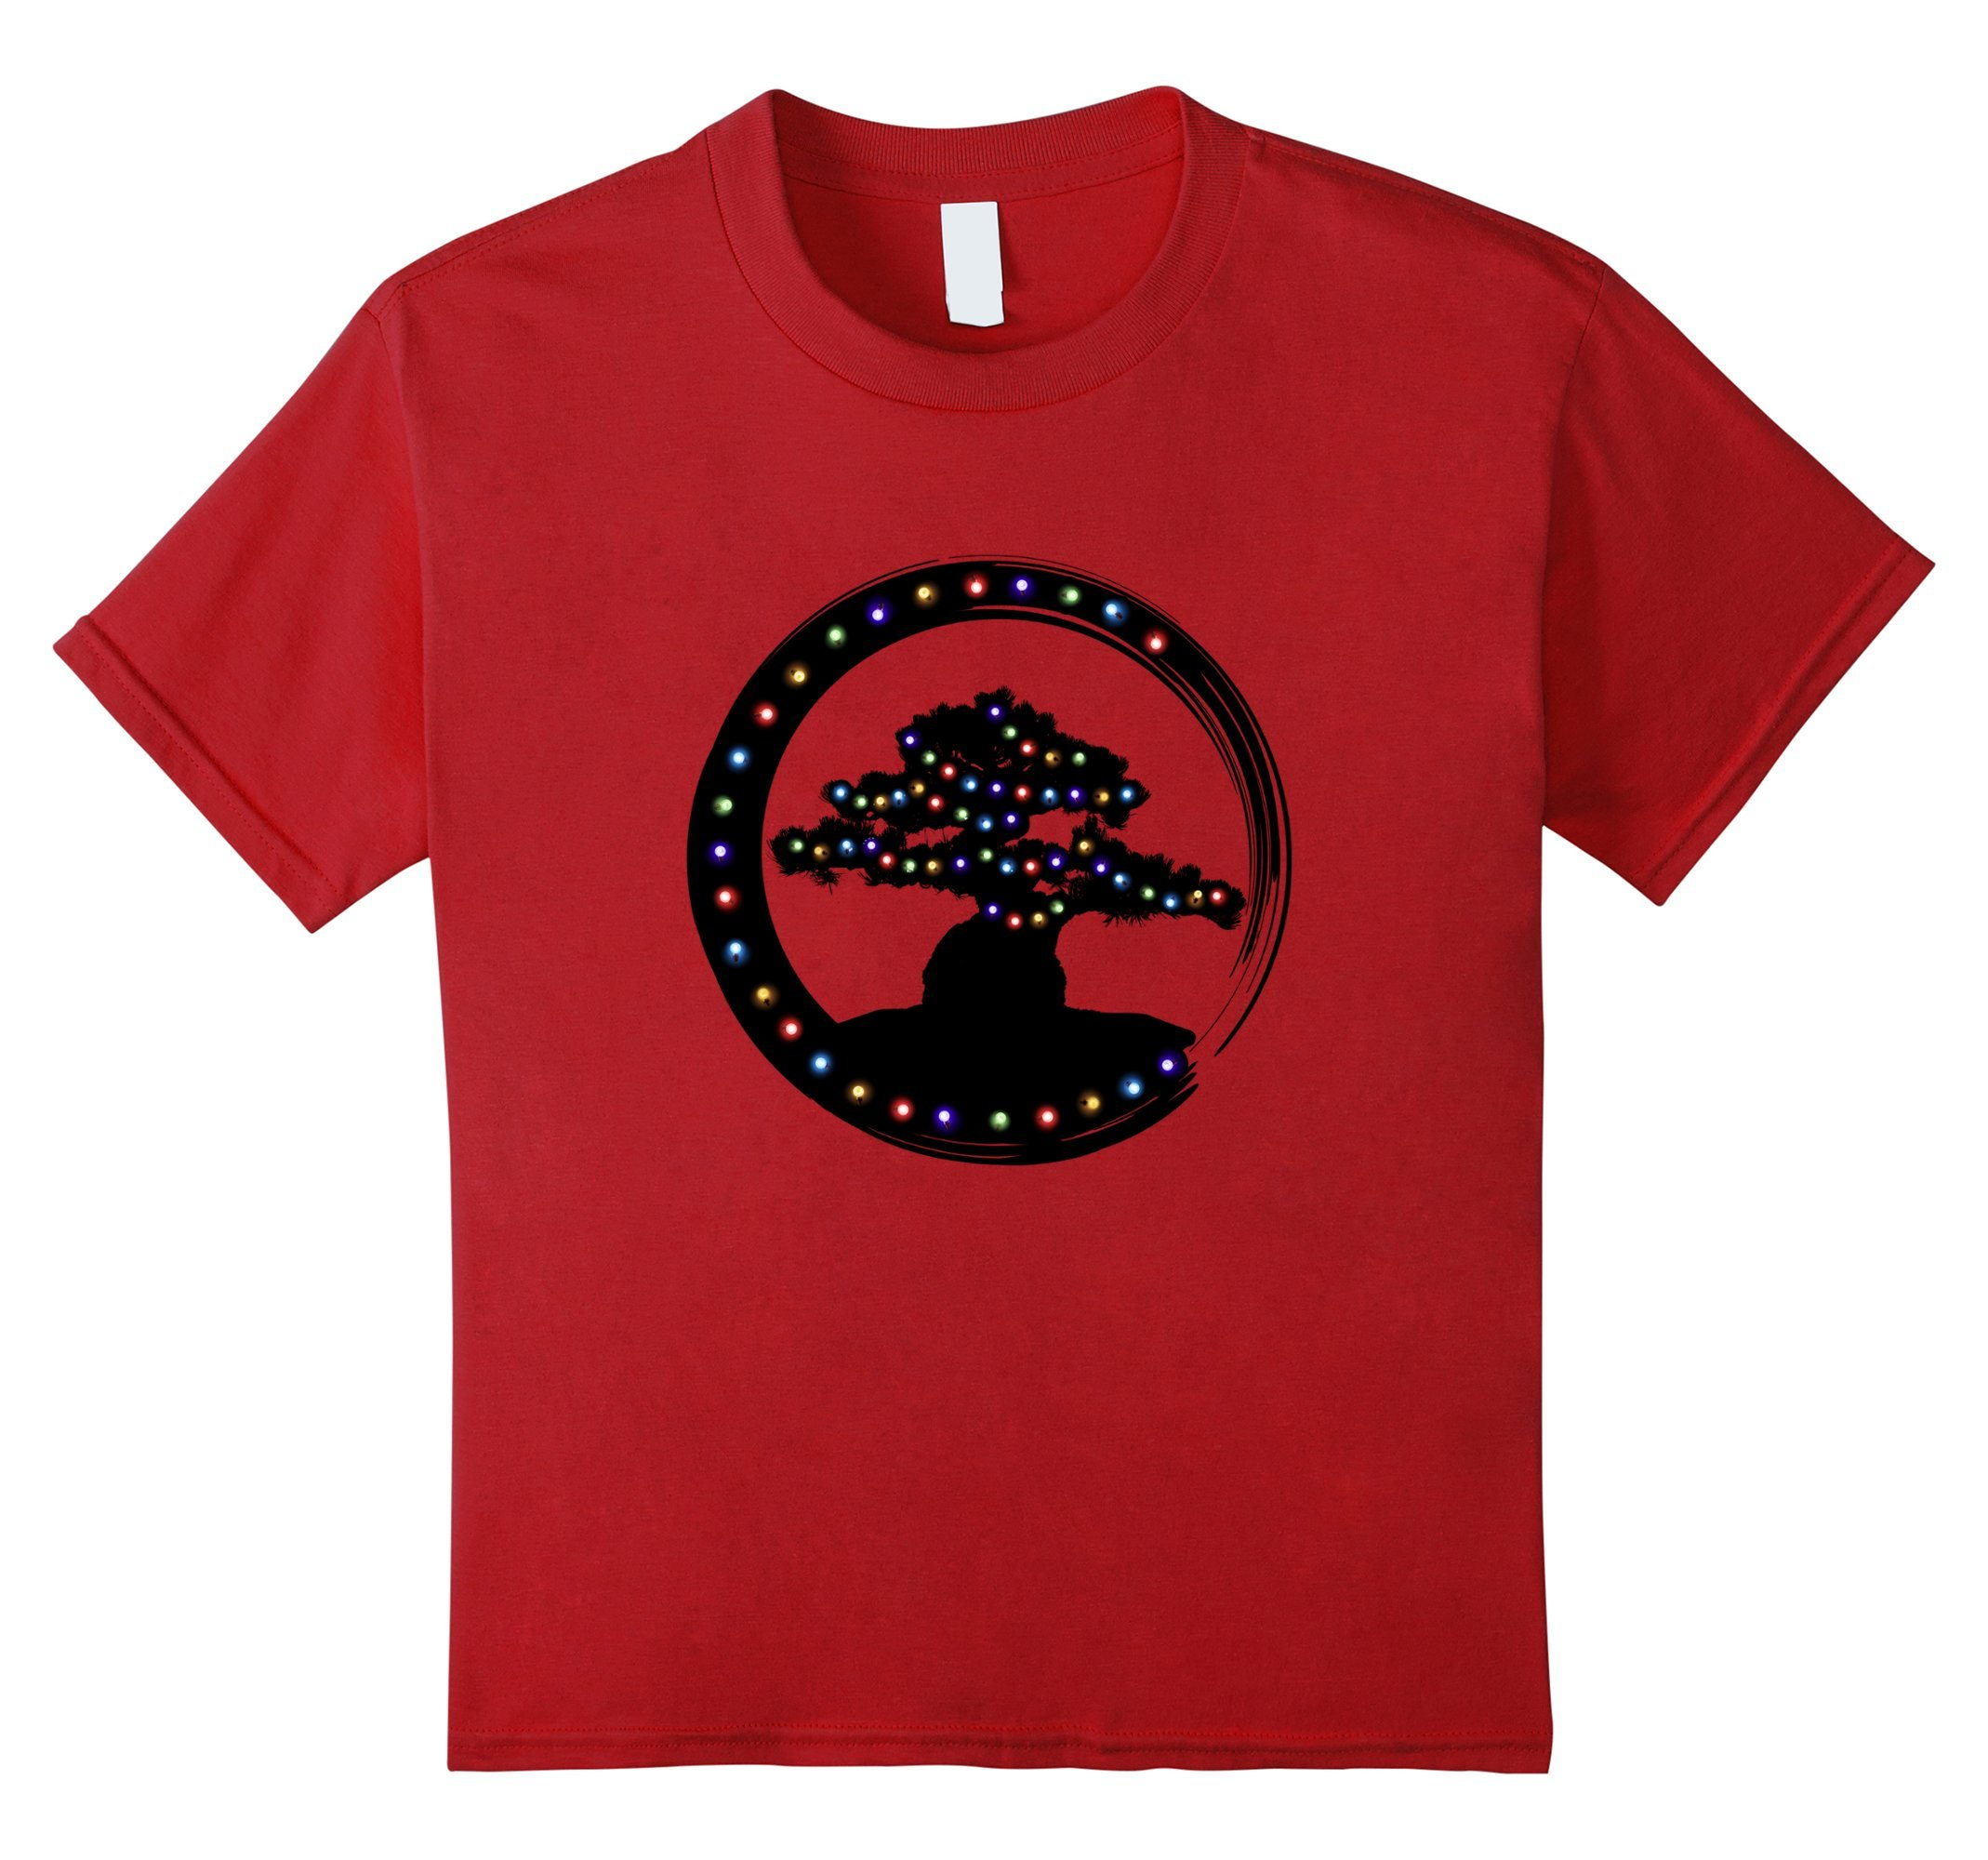 Kids Christmas Bonsai Tree Japanese Enso Circle Lights T-Shirt 8 Cranberry by Bonsai Tree T-shirt Co.